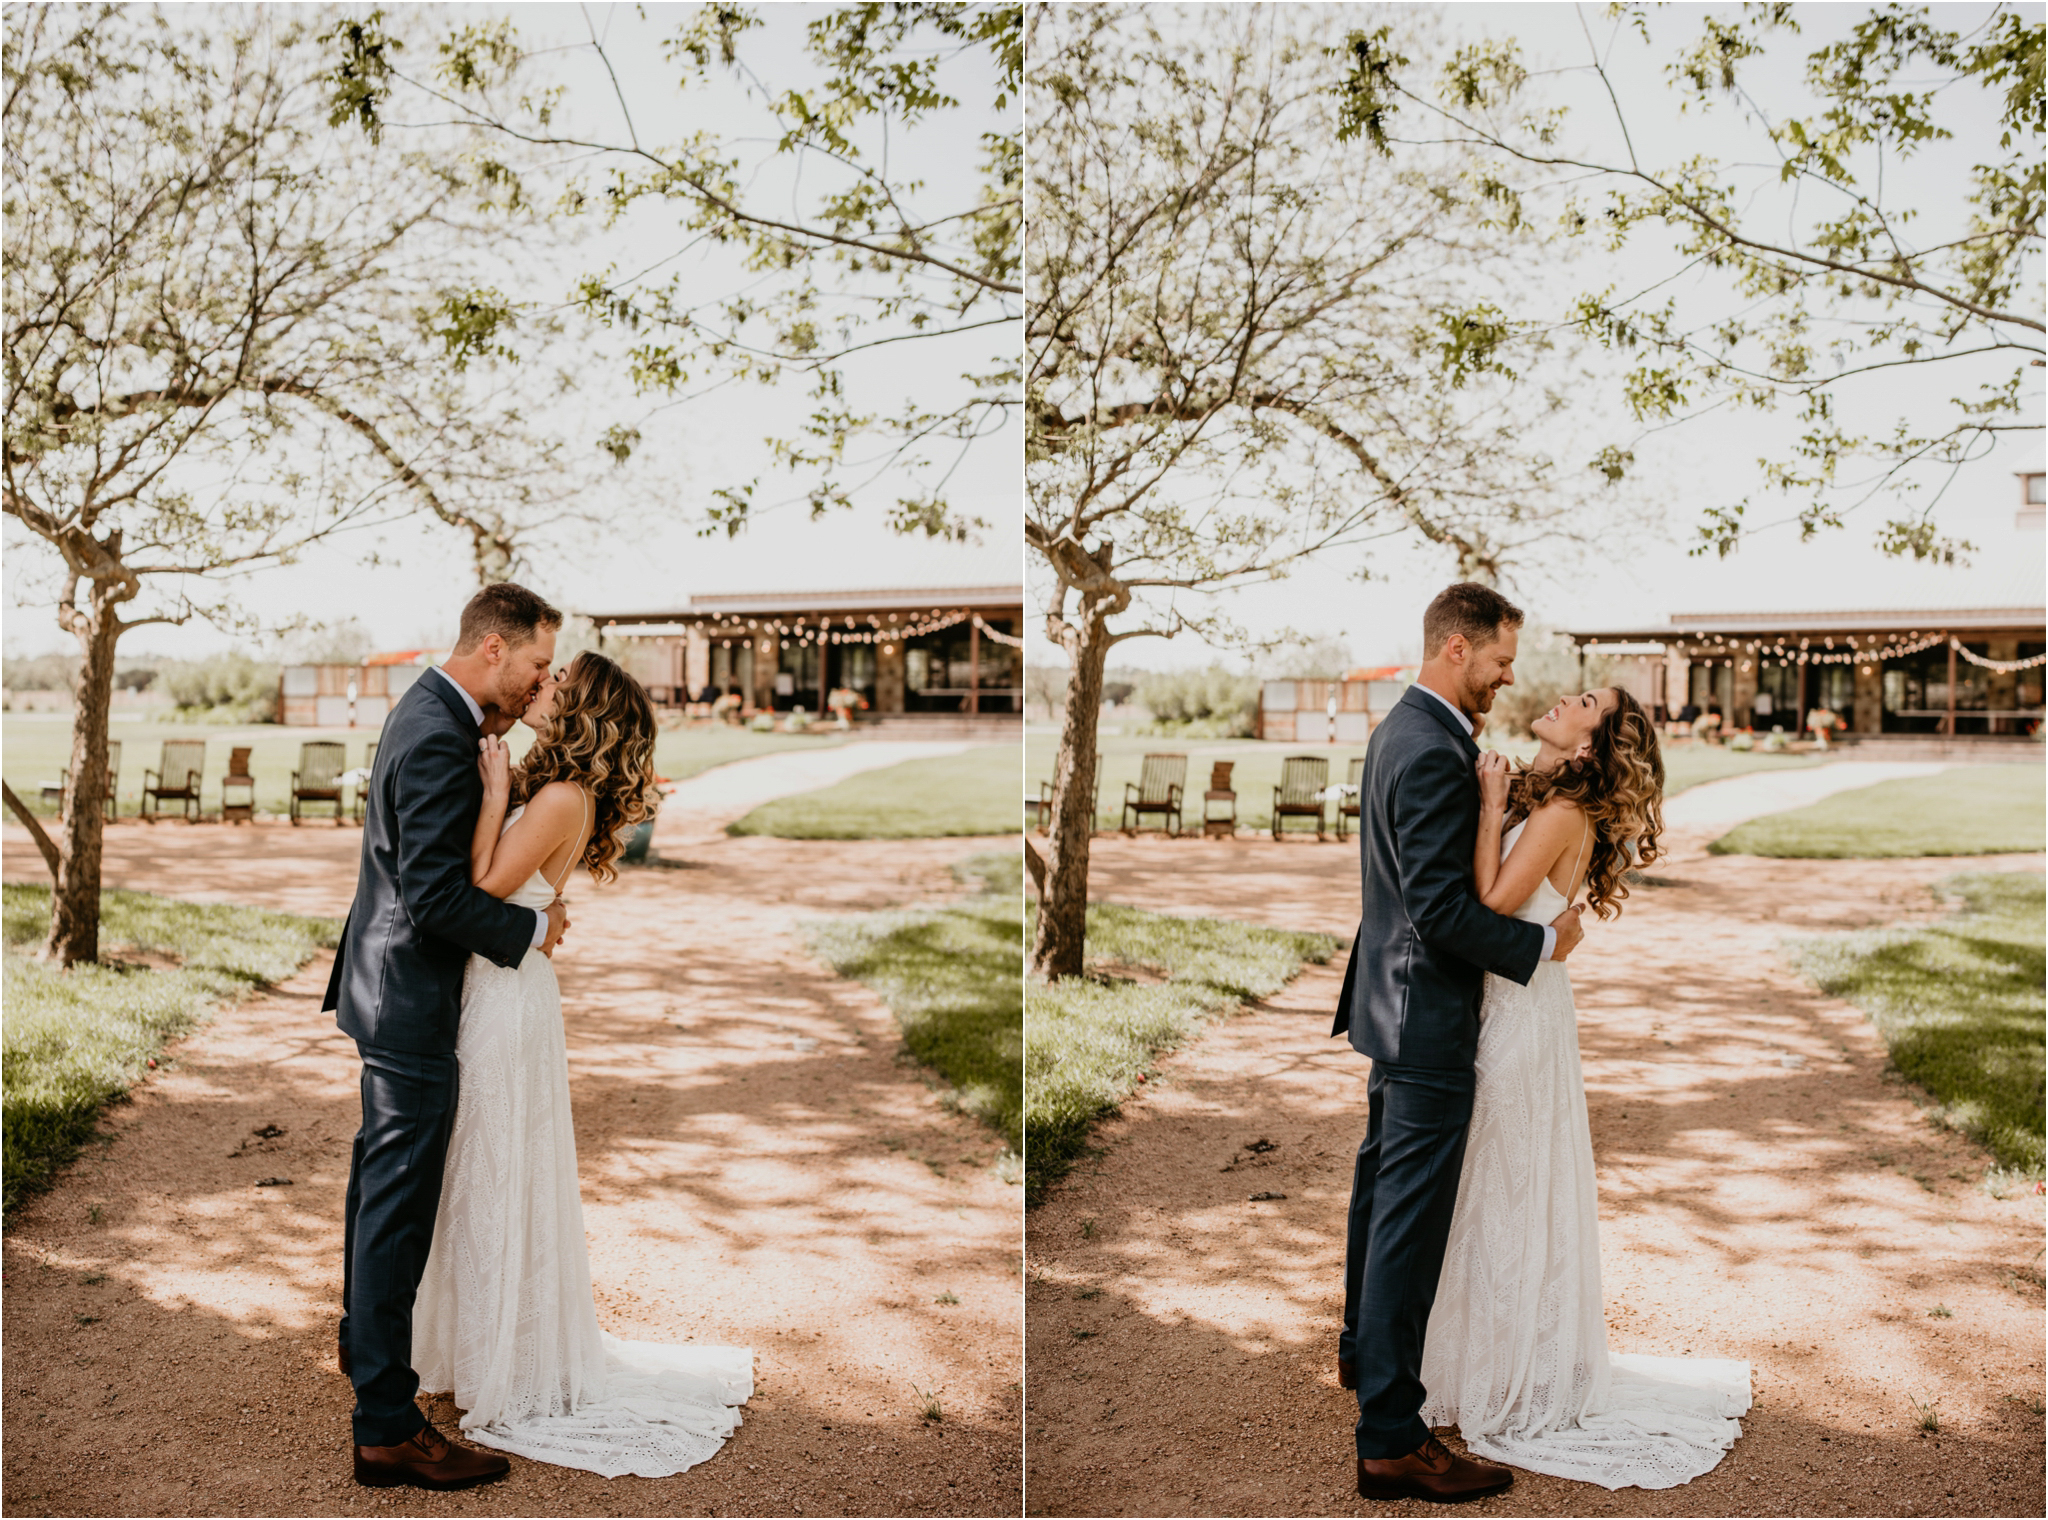 jillian-and-scott-pecan-springs-ranch-texas-and-washington-wedding-photographer-038.jpg